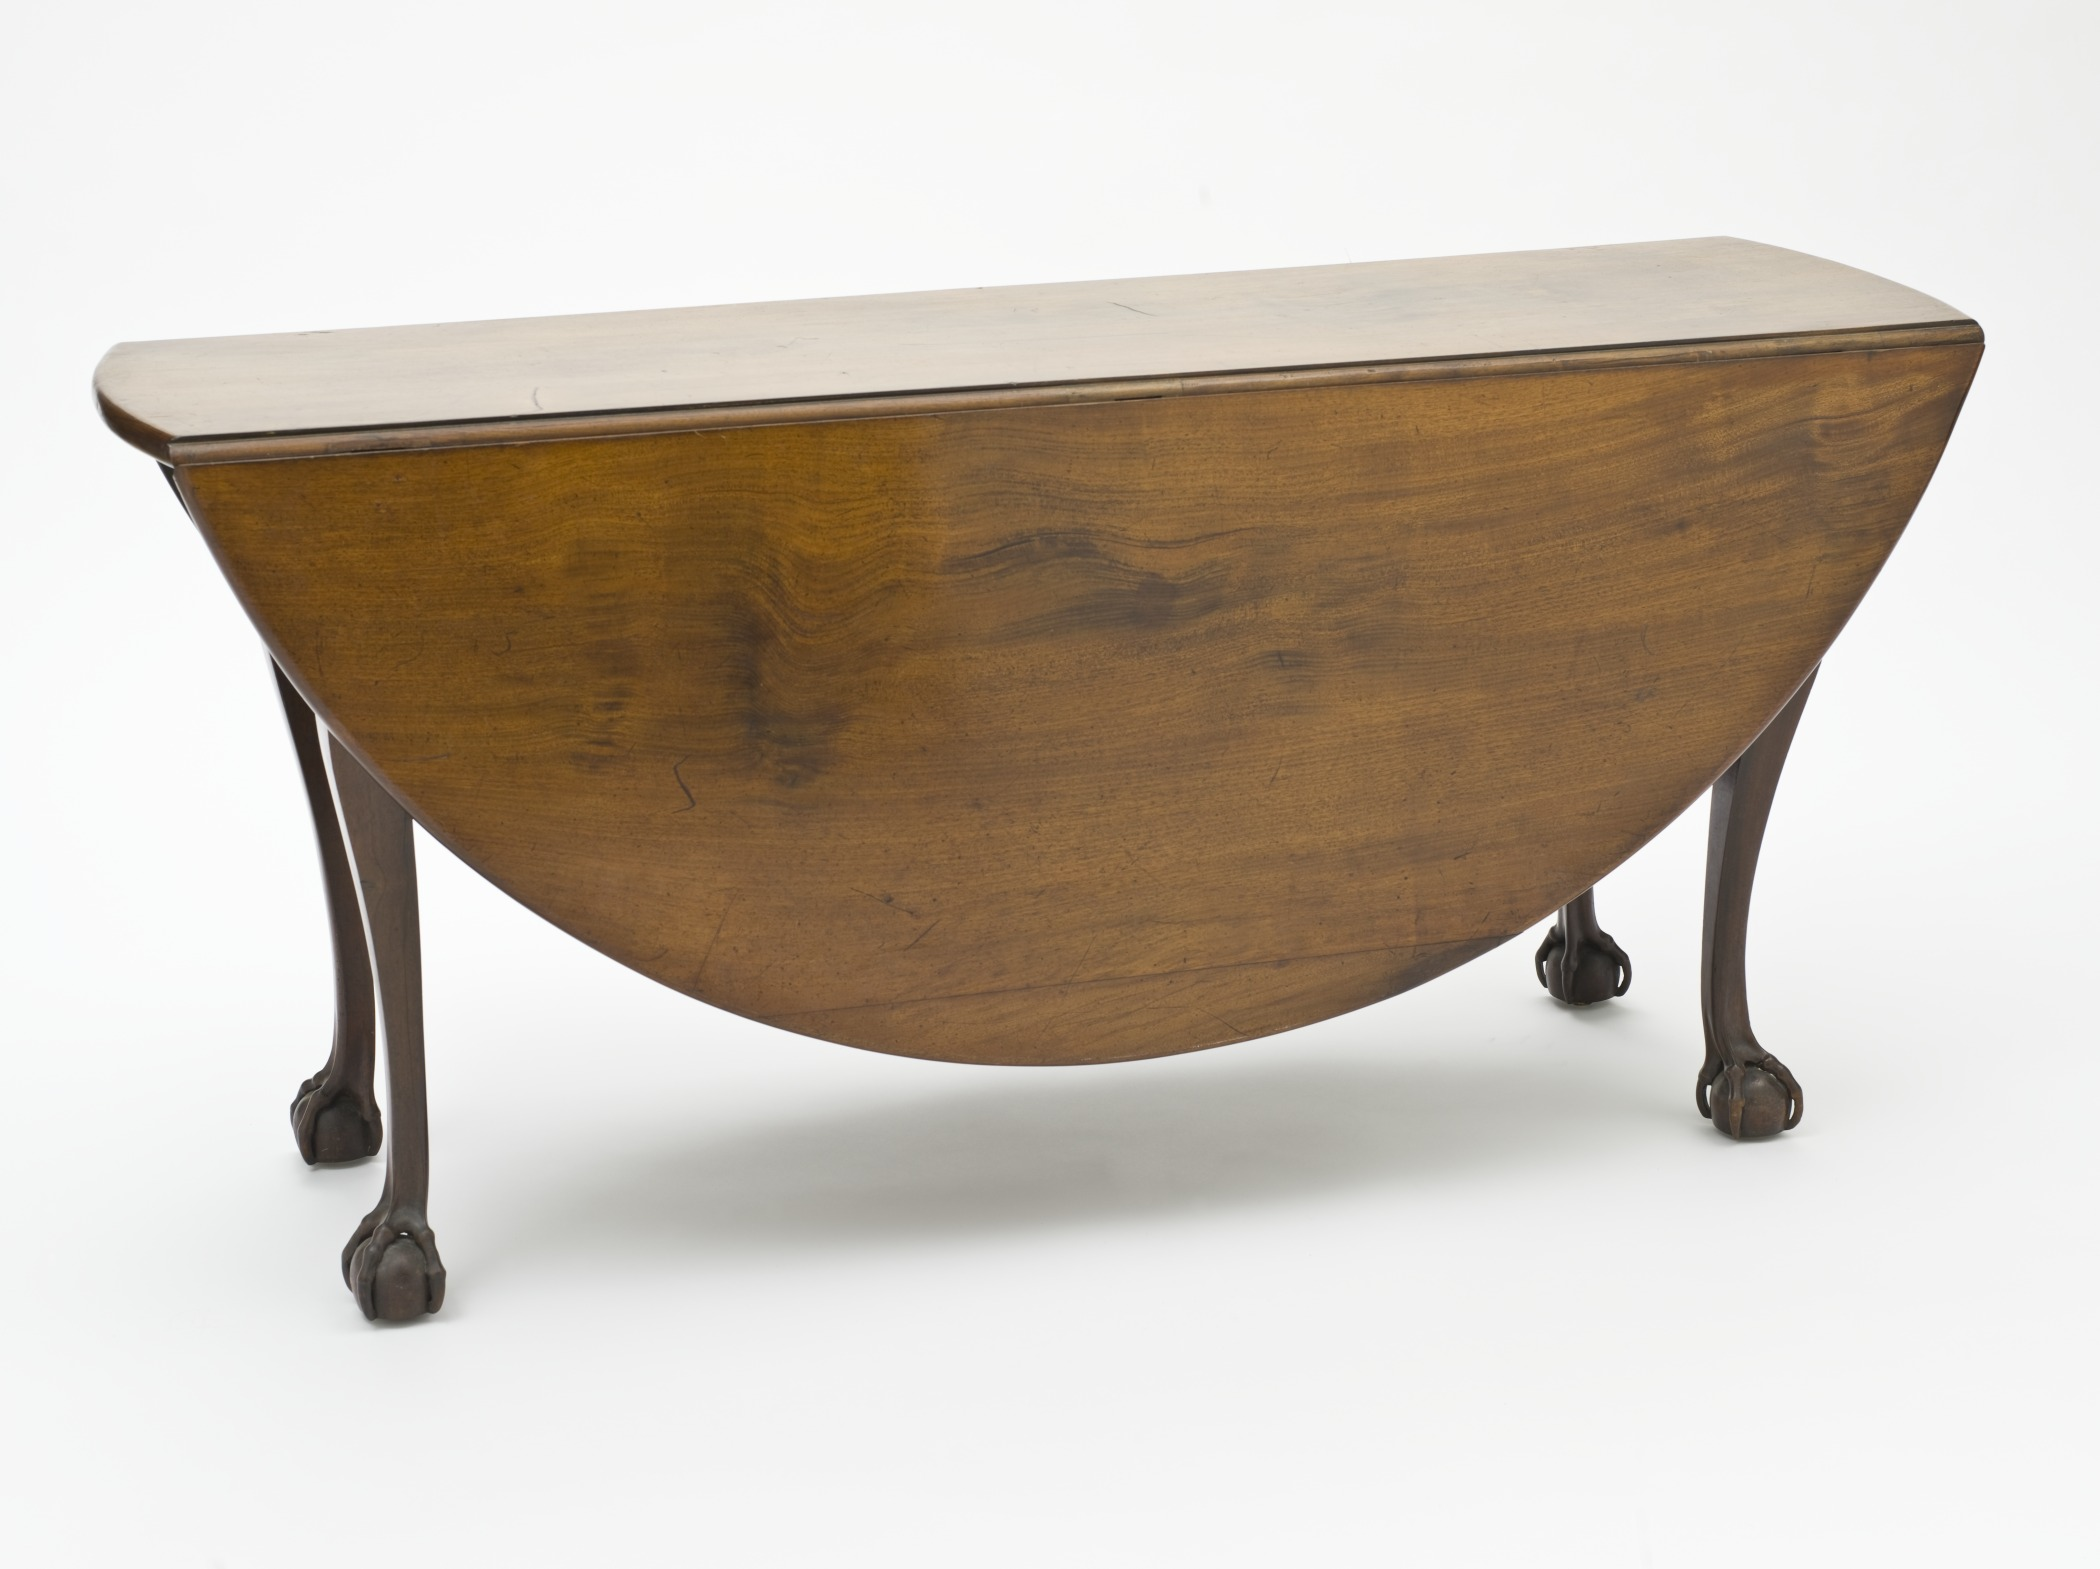 Perfect Oval Drop Leaf Dining Table, Built 1765 1785, And In The Decorative Arts  And Design Collection Of The Los Angeles County Museum Of Art